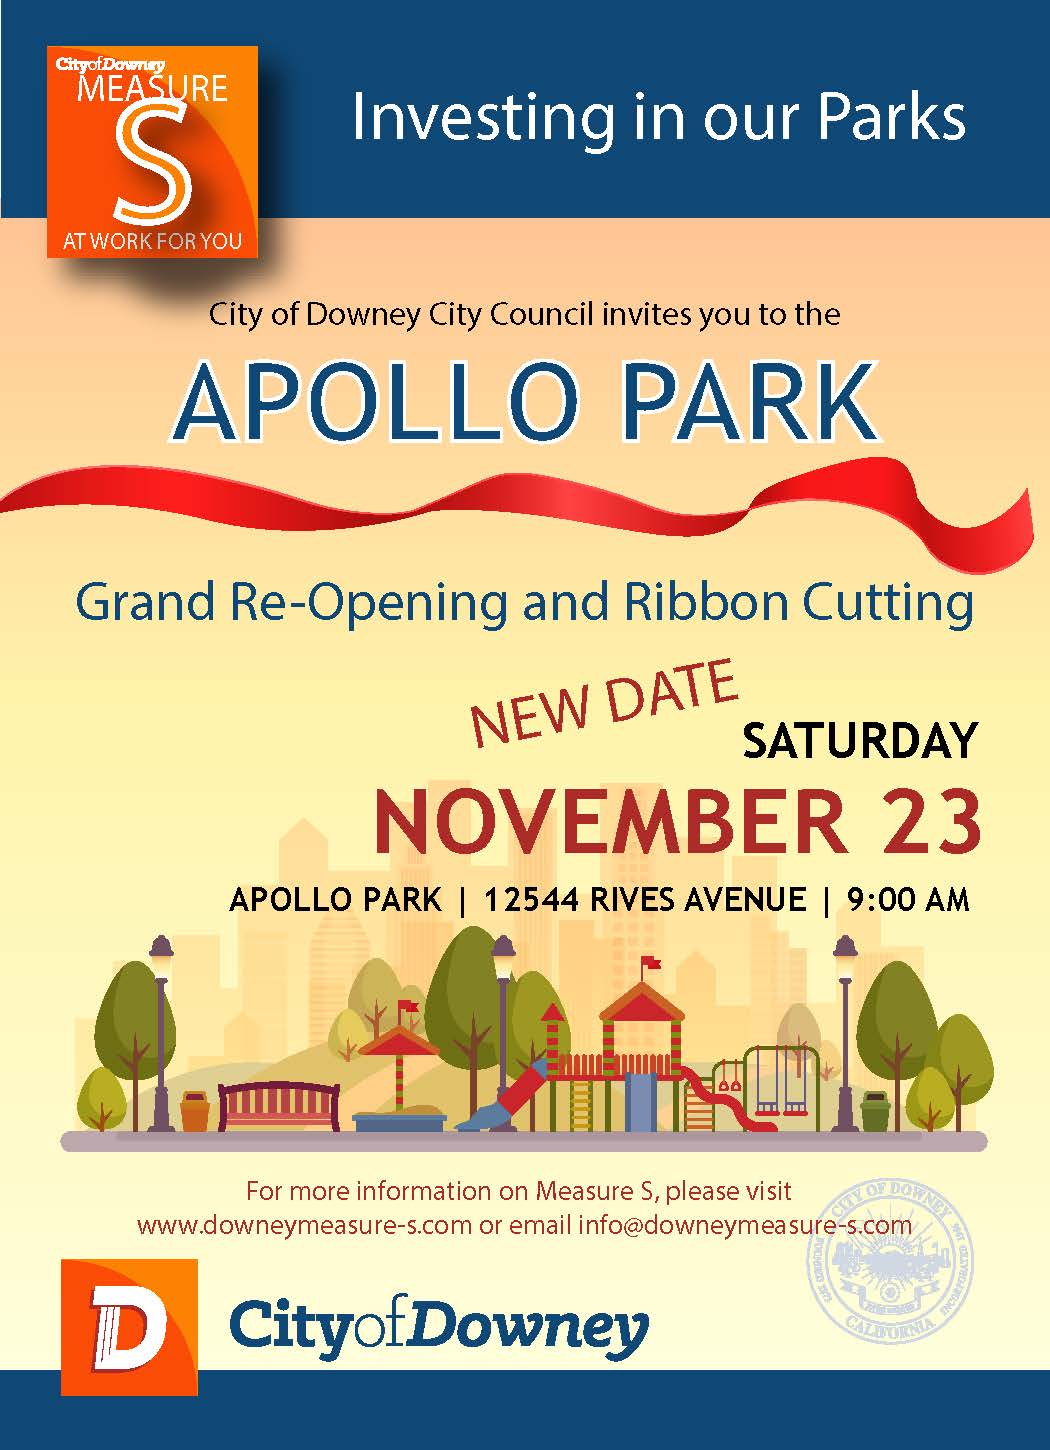 Apollo Park Grand Re-Opening and Ribbon Cutting Ceremony